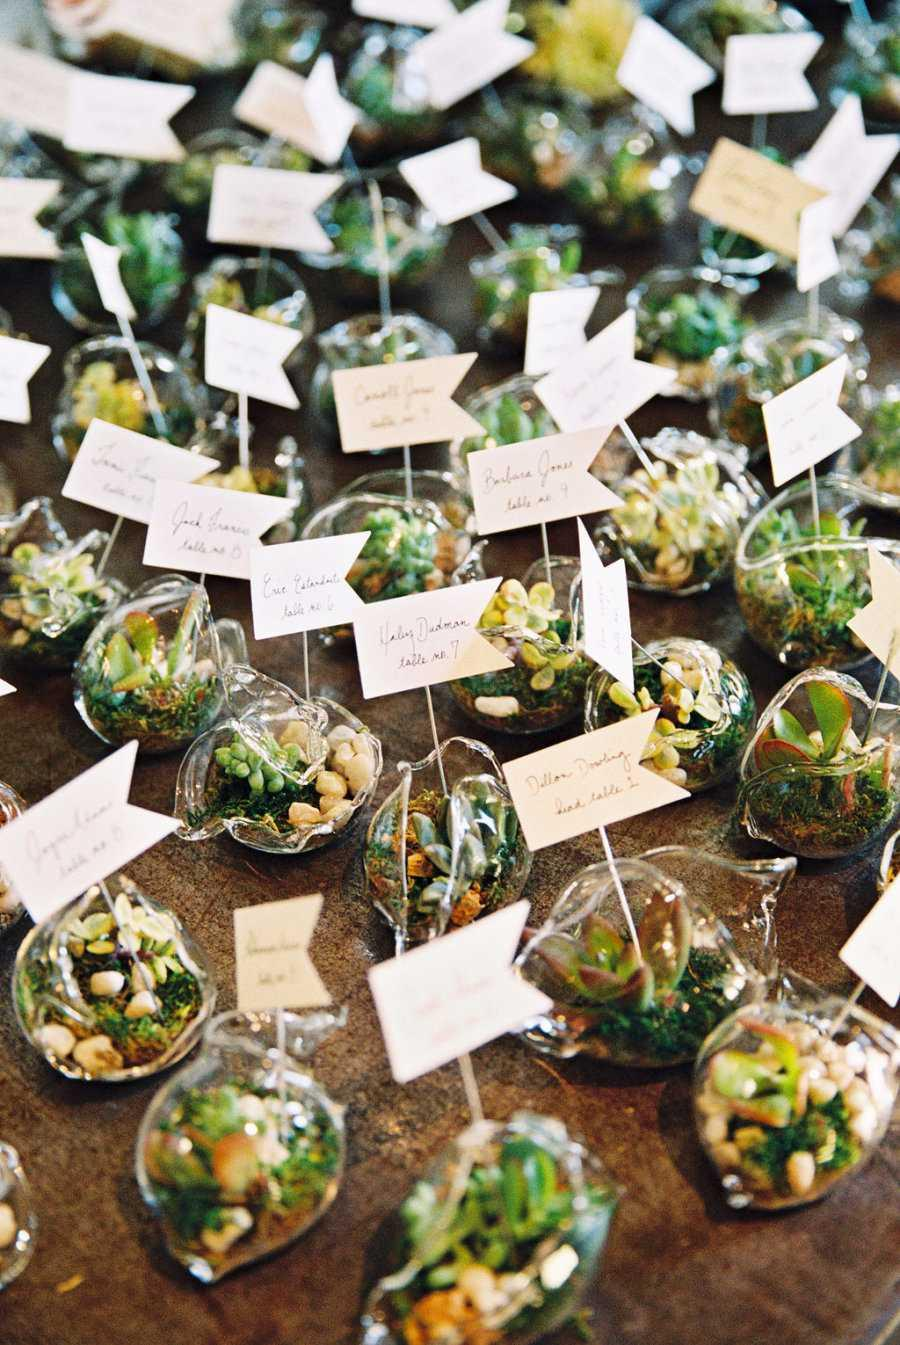 Simple and chic: bet on terrariums as souvenirs